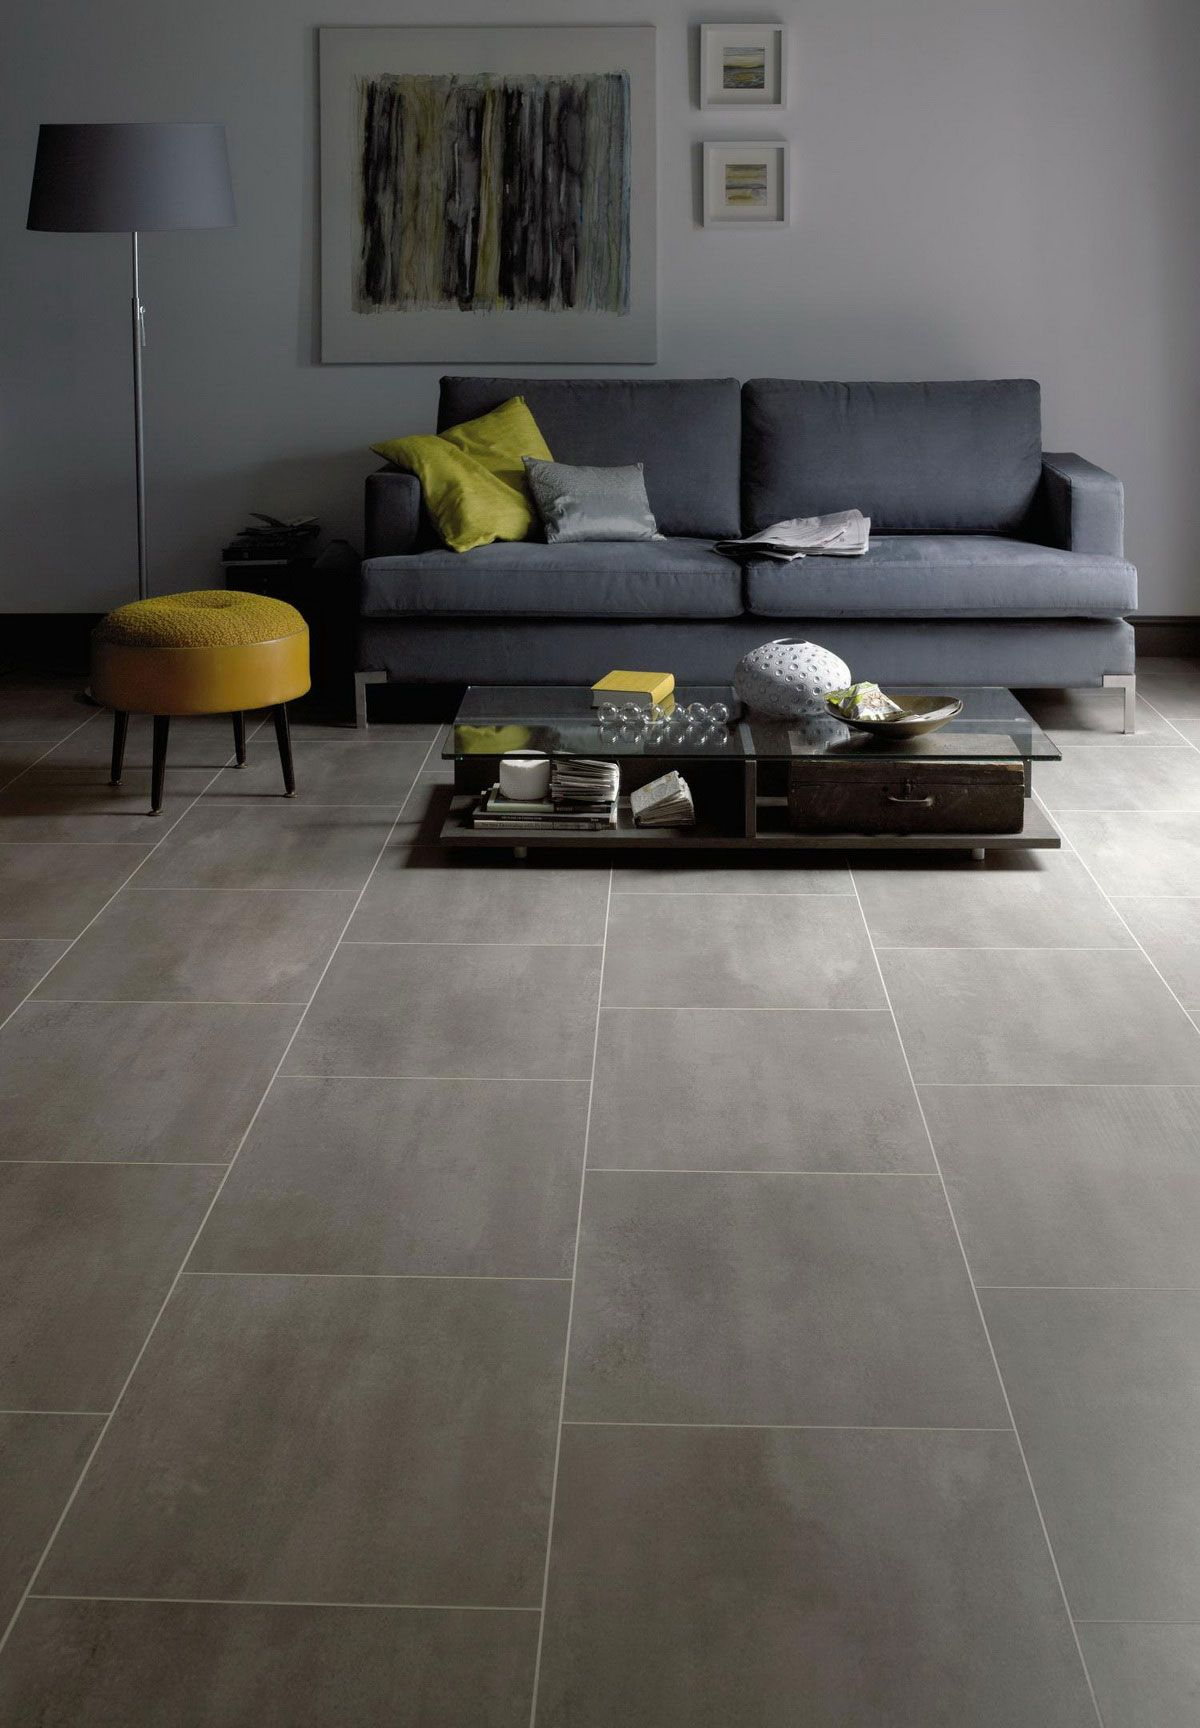 Design Modern Tile Floors love this large porcelain tile flooring look using vinyl instead of real tile